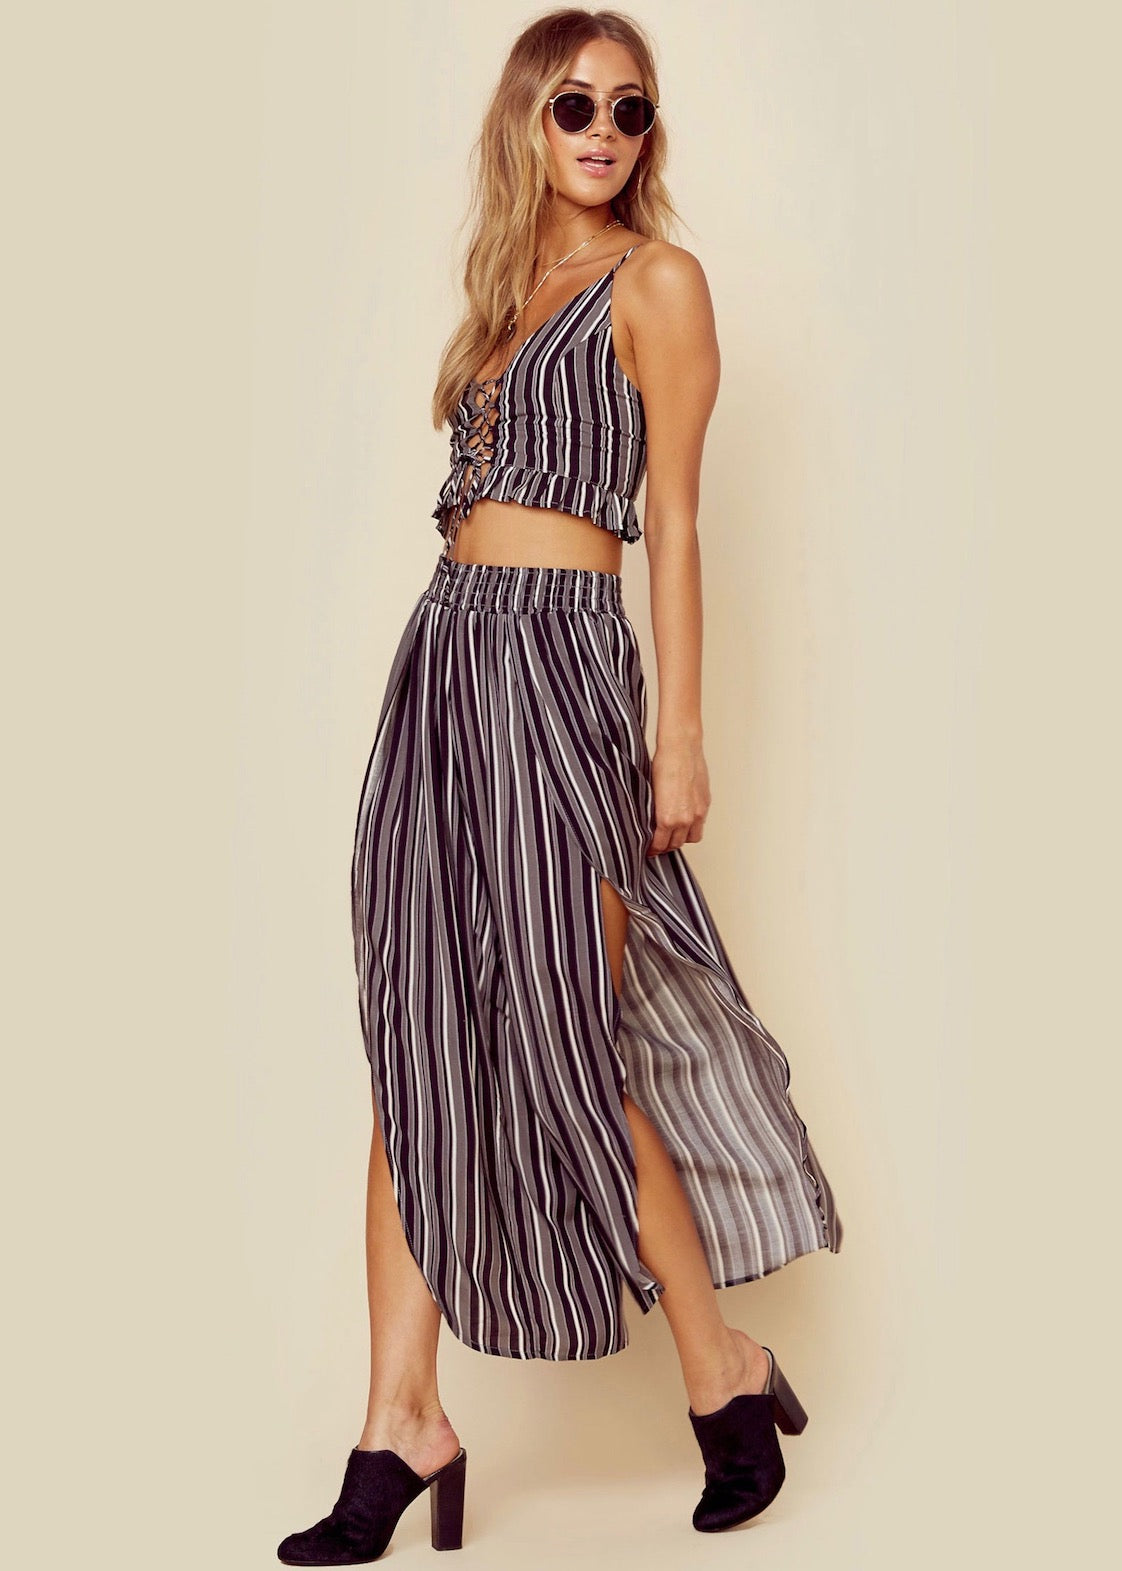 Planet Blue Blue Life - Pants Set - Sexy in Stripes Culotte